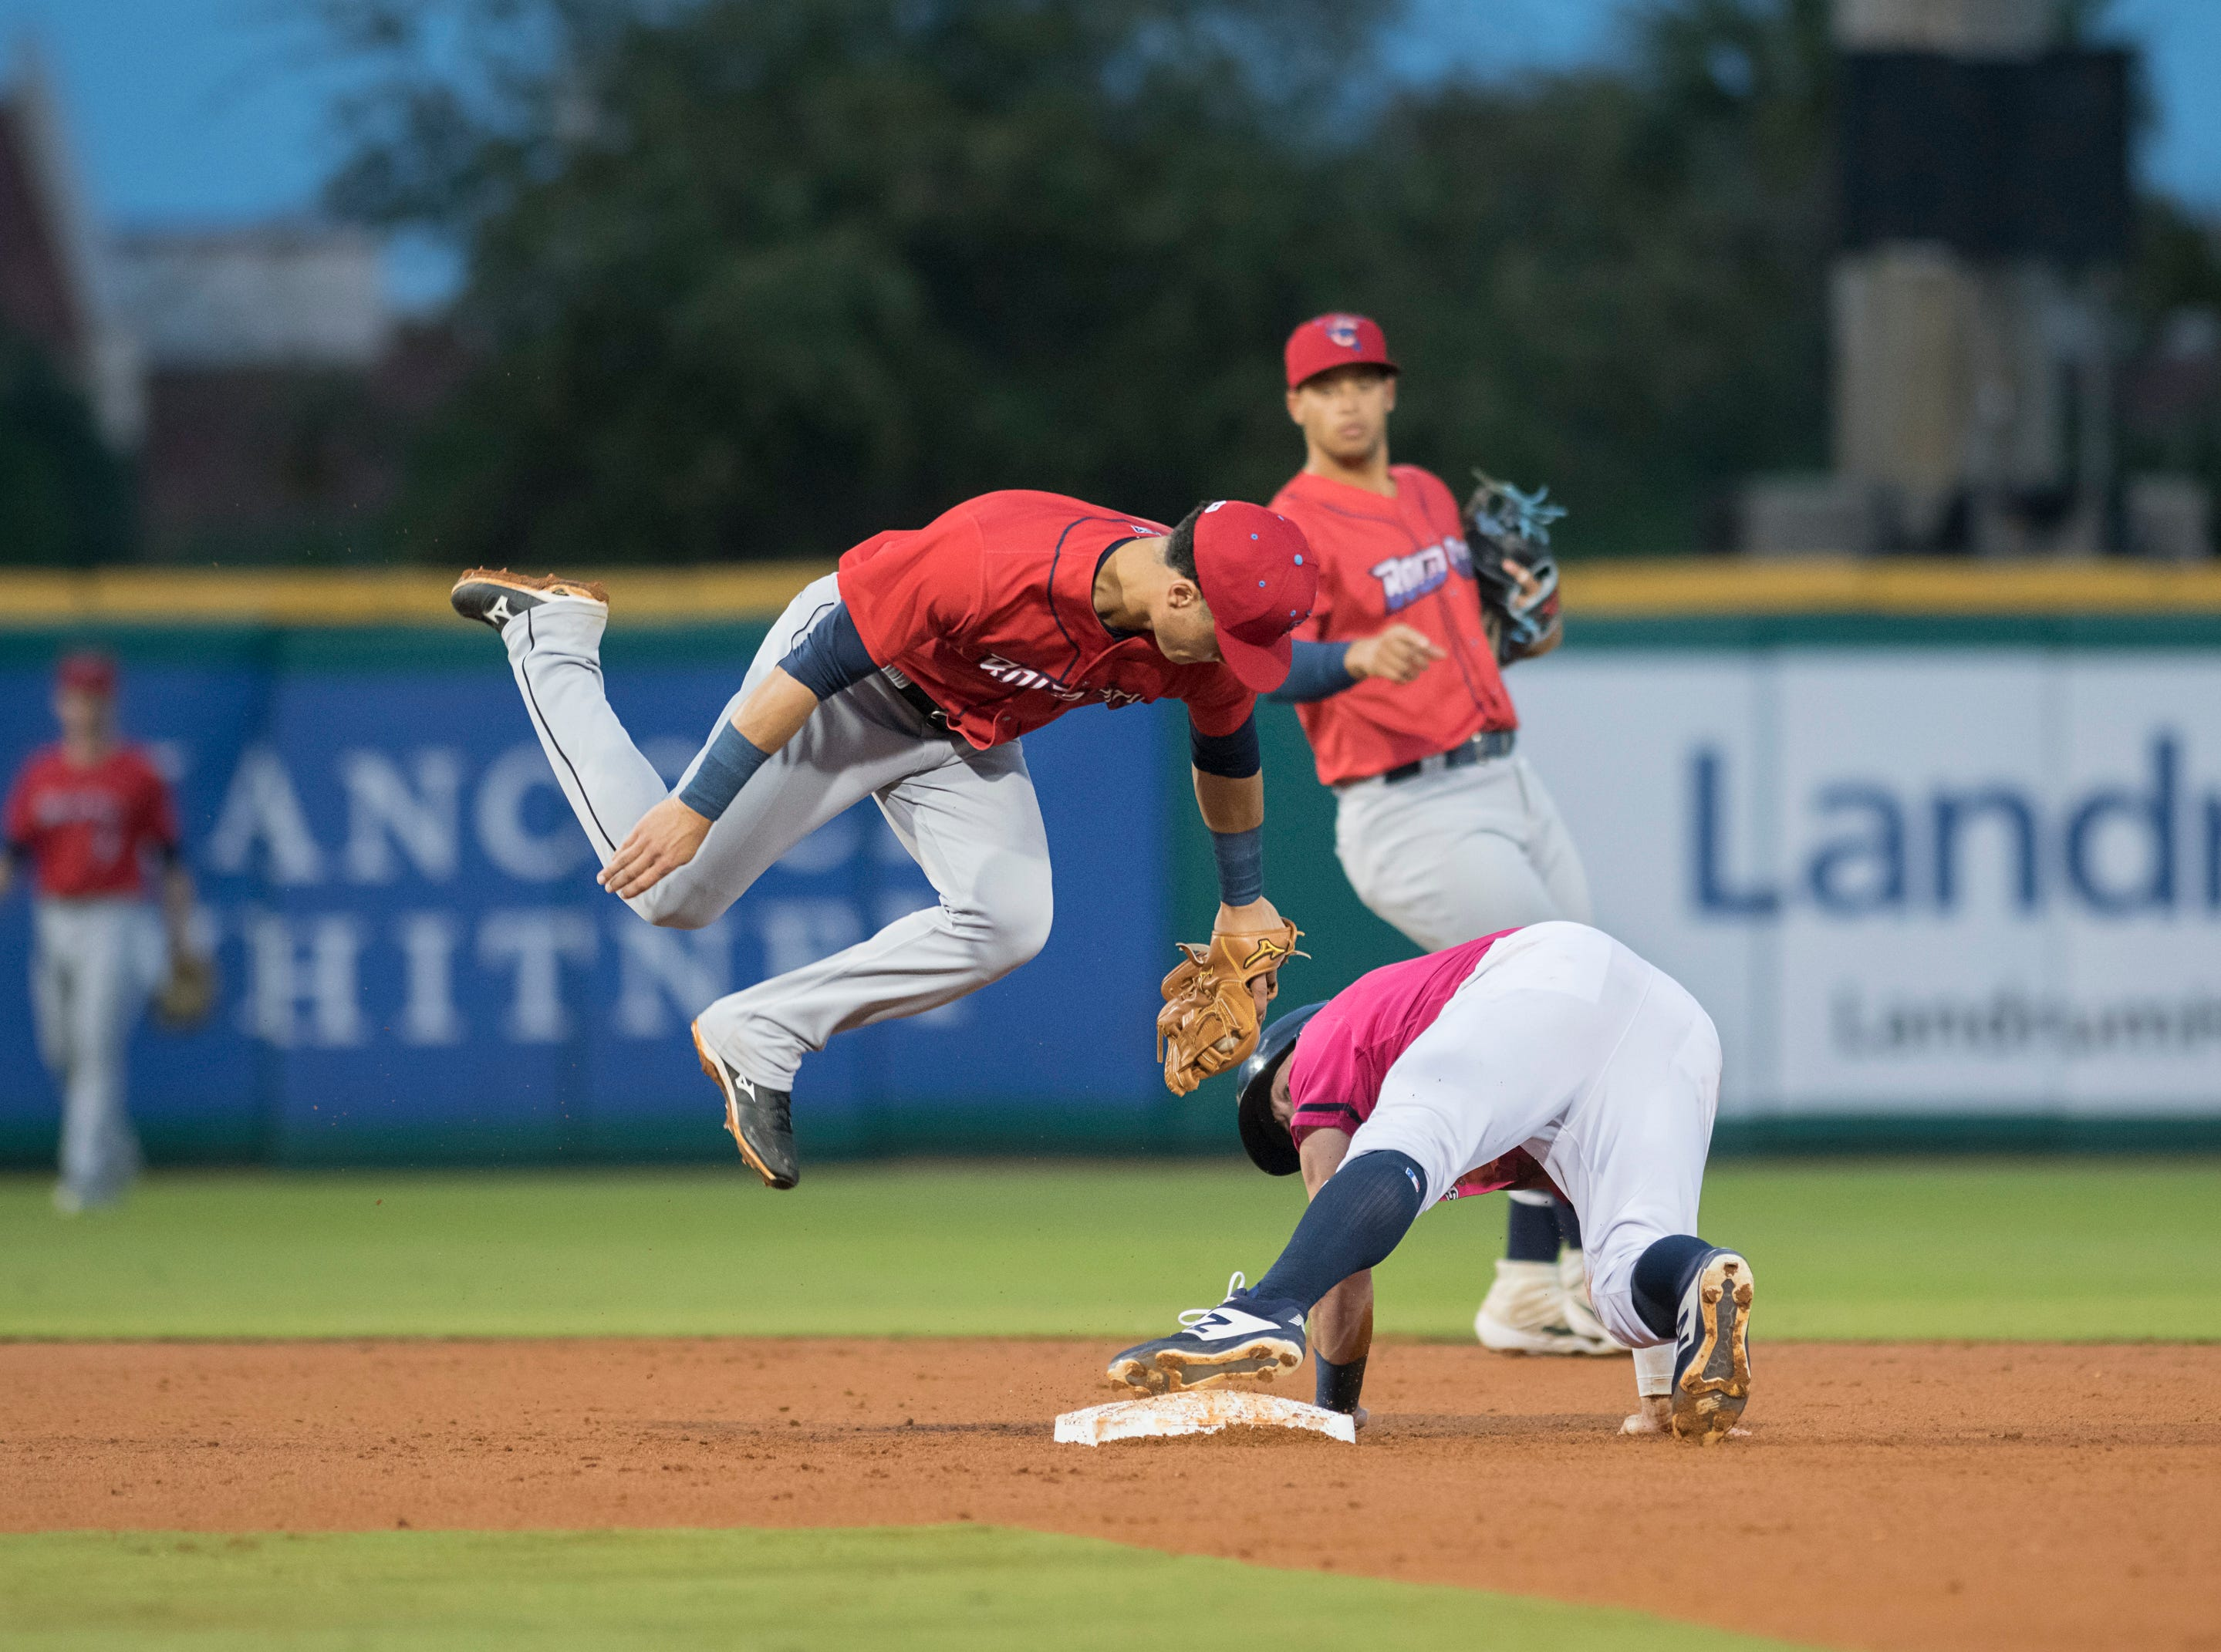 Jimmy Kerrigan (12) safely steals second base ahead of the throw to Bryson Brigman (6) during the Jacksonville Jumbo Shrimp vs Pensacola Blue Wahoos baseball game in Pensacola on Friday, April 12, 2019.